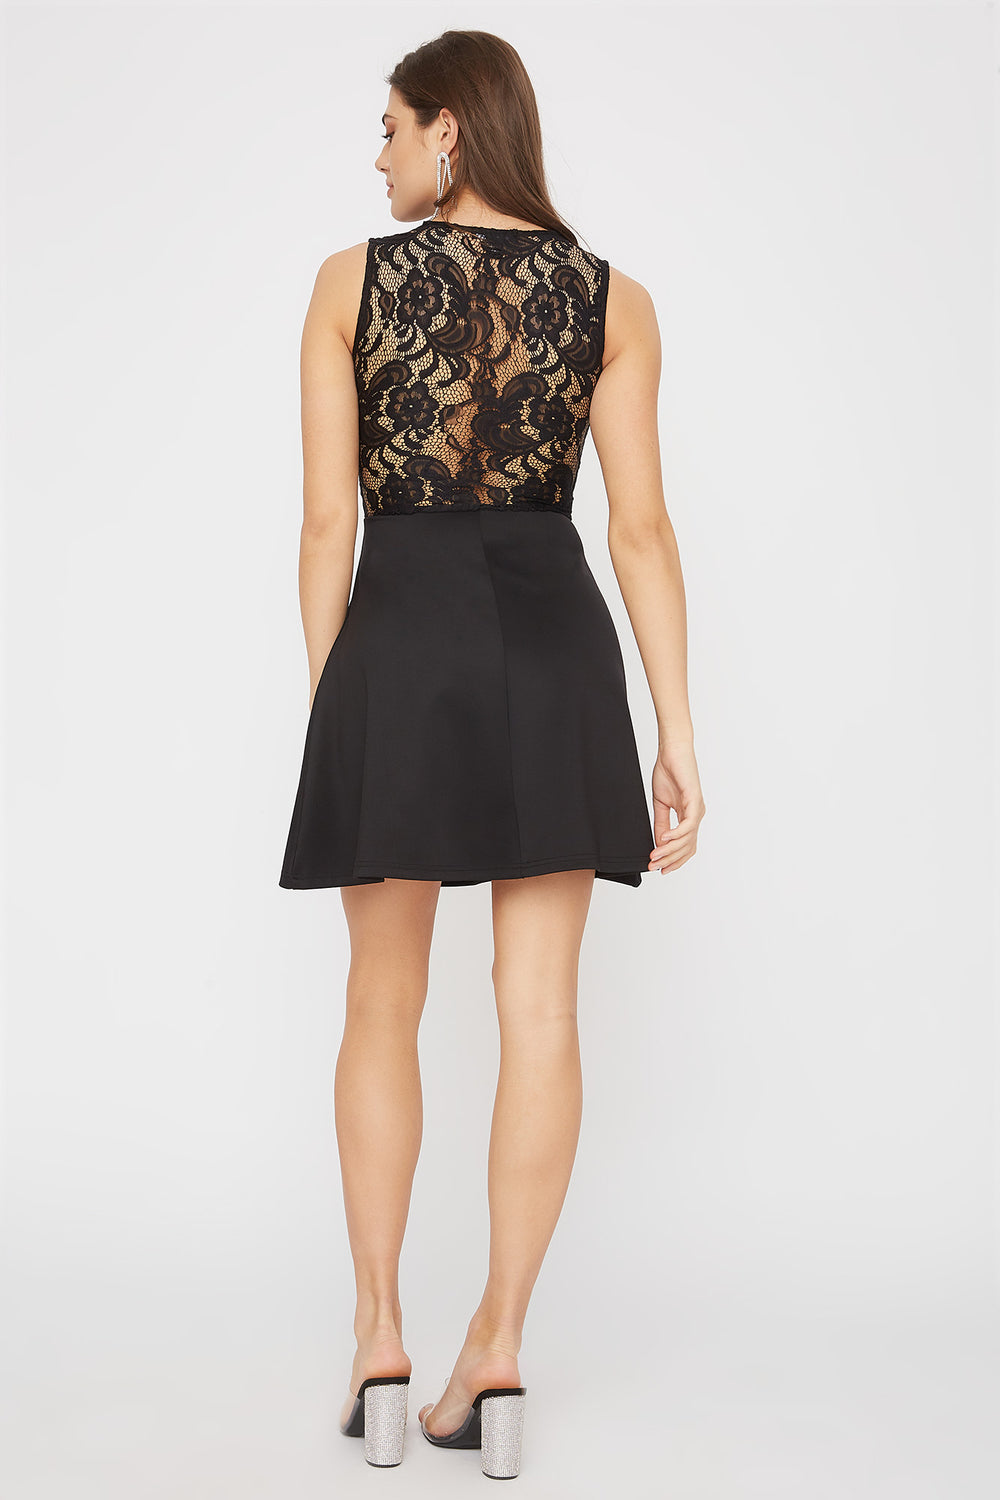 Contrast Lace Skater Dress Black